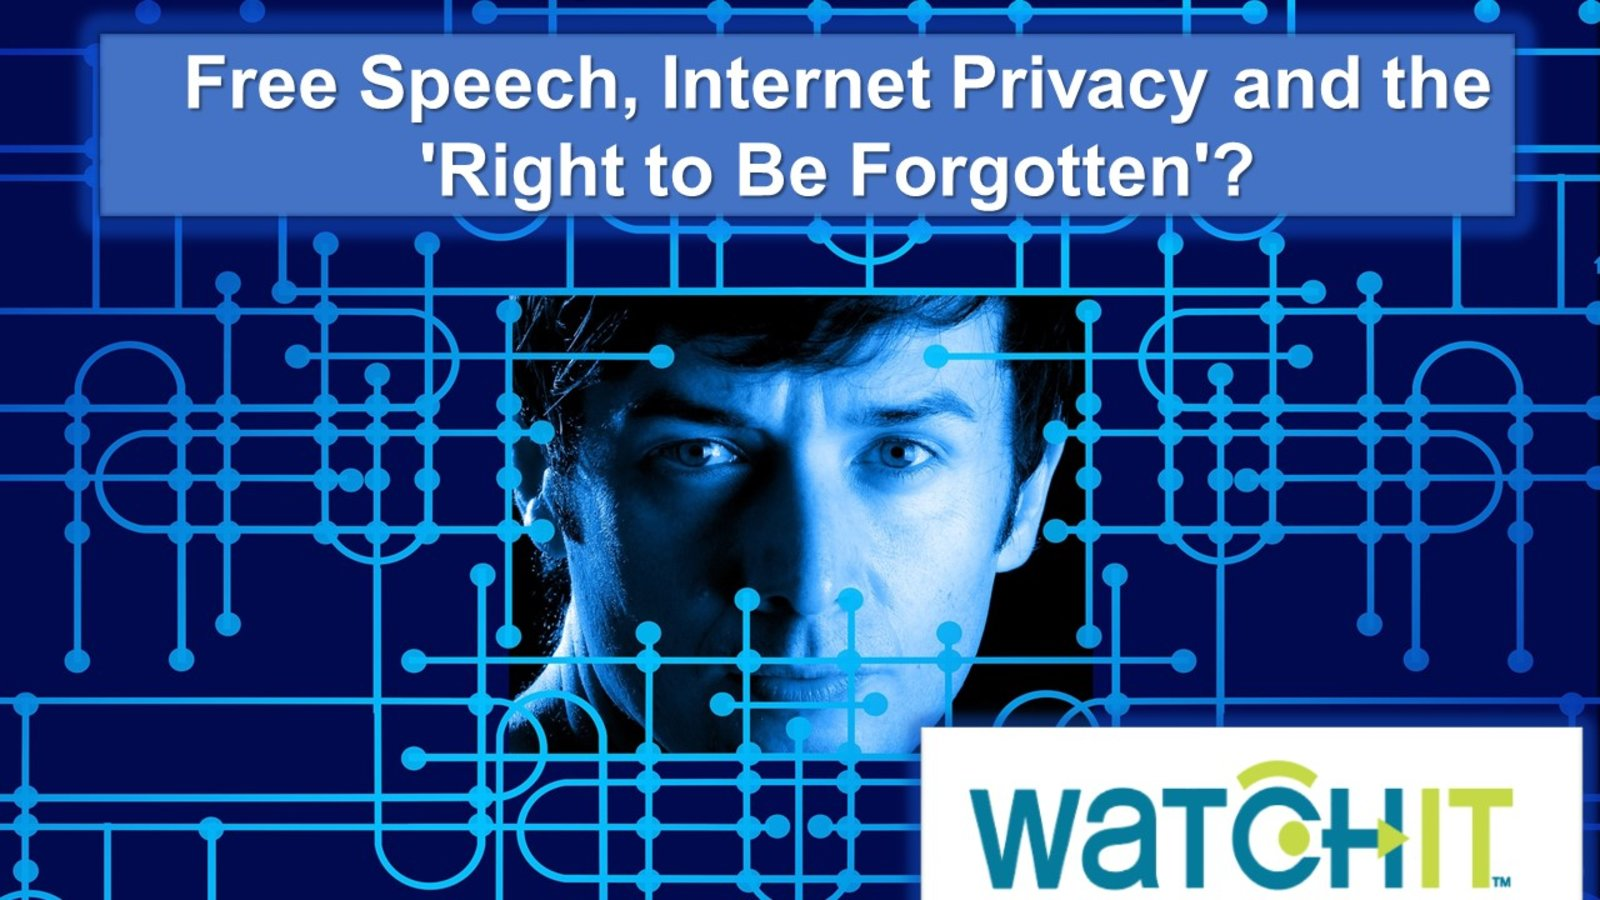 Free Speech, Internet Privacy and the 'Right to Be Forgotten' - Advancing the Management Skills of IT Professionals